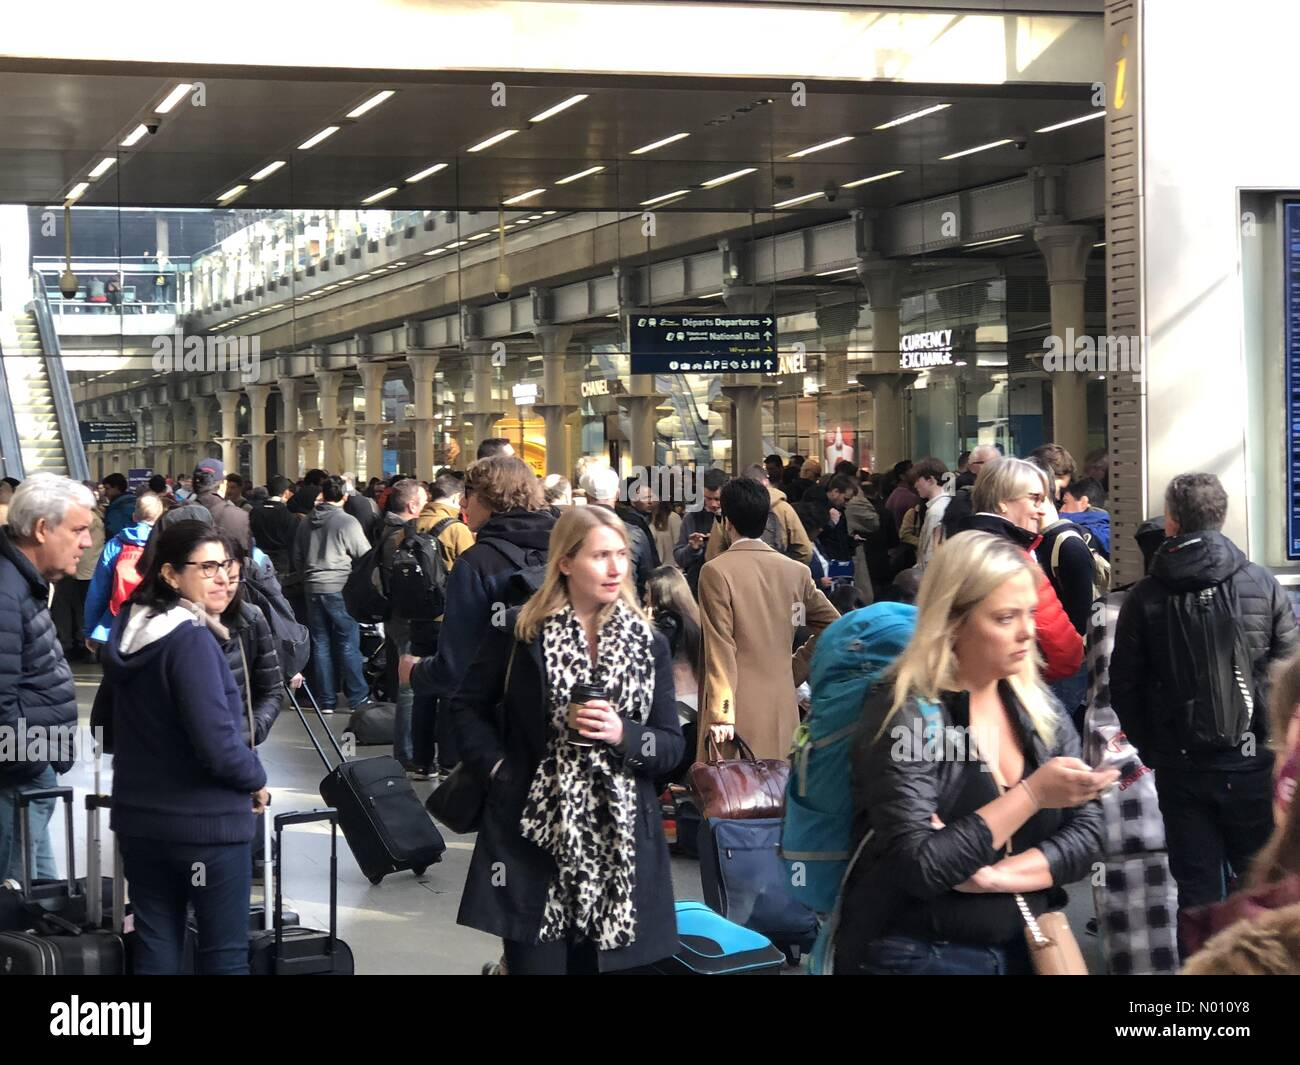 London, UK. 30th March, 2019. Passengers waiting at London St Pancras International railway station after Eurostar services have been cancelled due to a trespasser on the UK high speed line Credit: GarethTibbles/StockimoNews/Alamy Live News - Stock Image